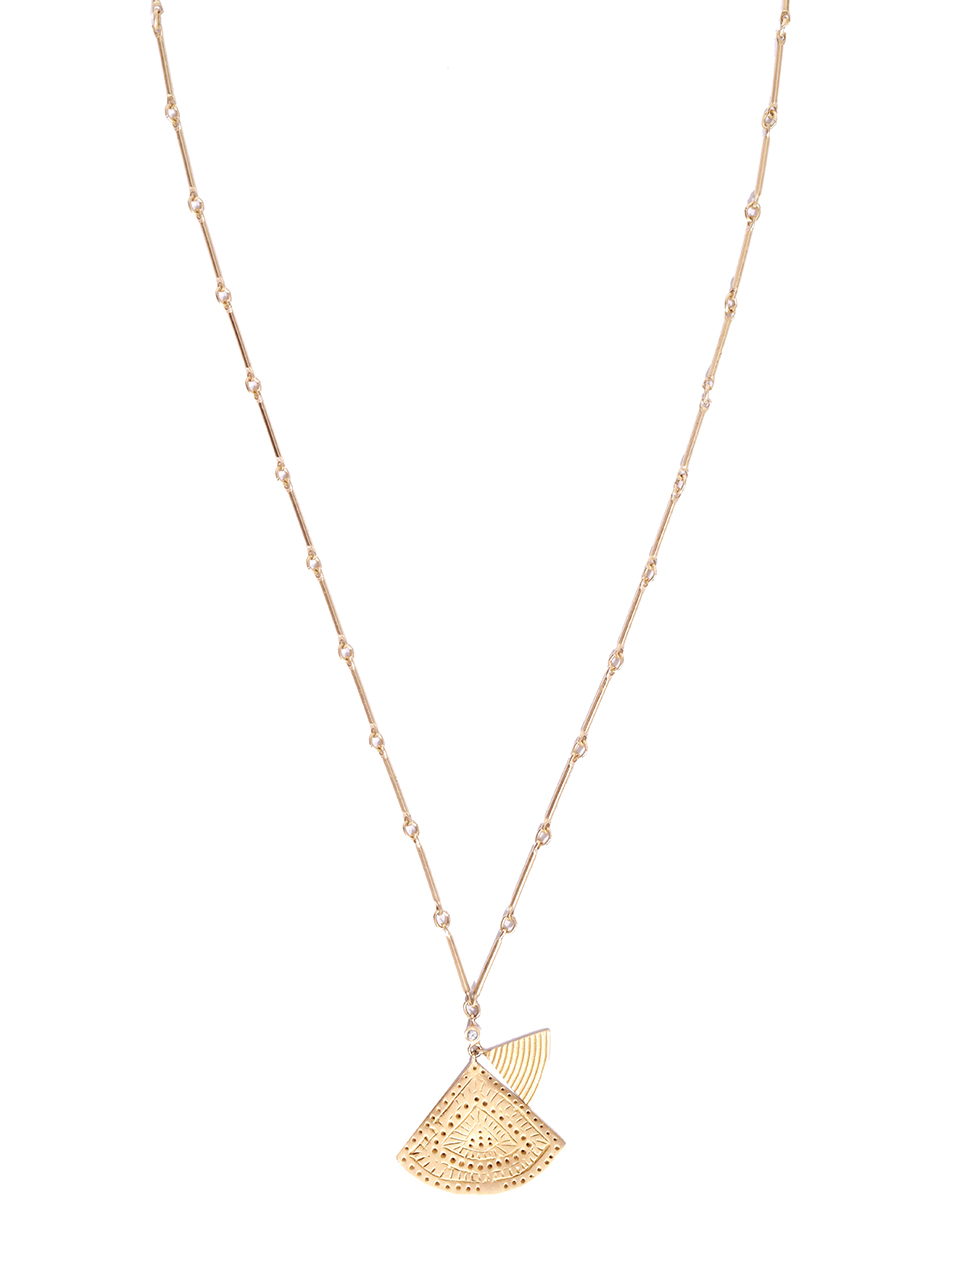 Elizabeth and James Elton Necklace in Gold  X1https://cdn11.bigcommerce.com/s-3wu6n/products/33322/images/110059/10__63196.1597108393.244.365.jpg?c=2X2